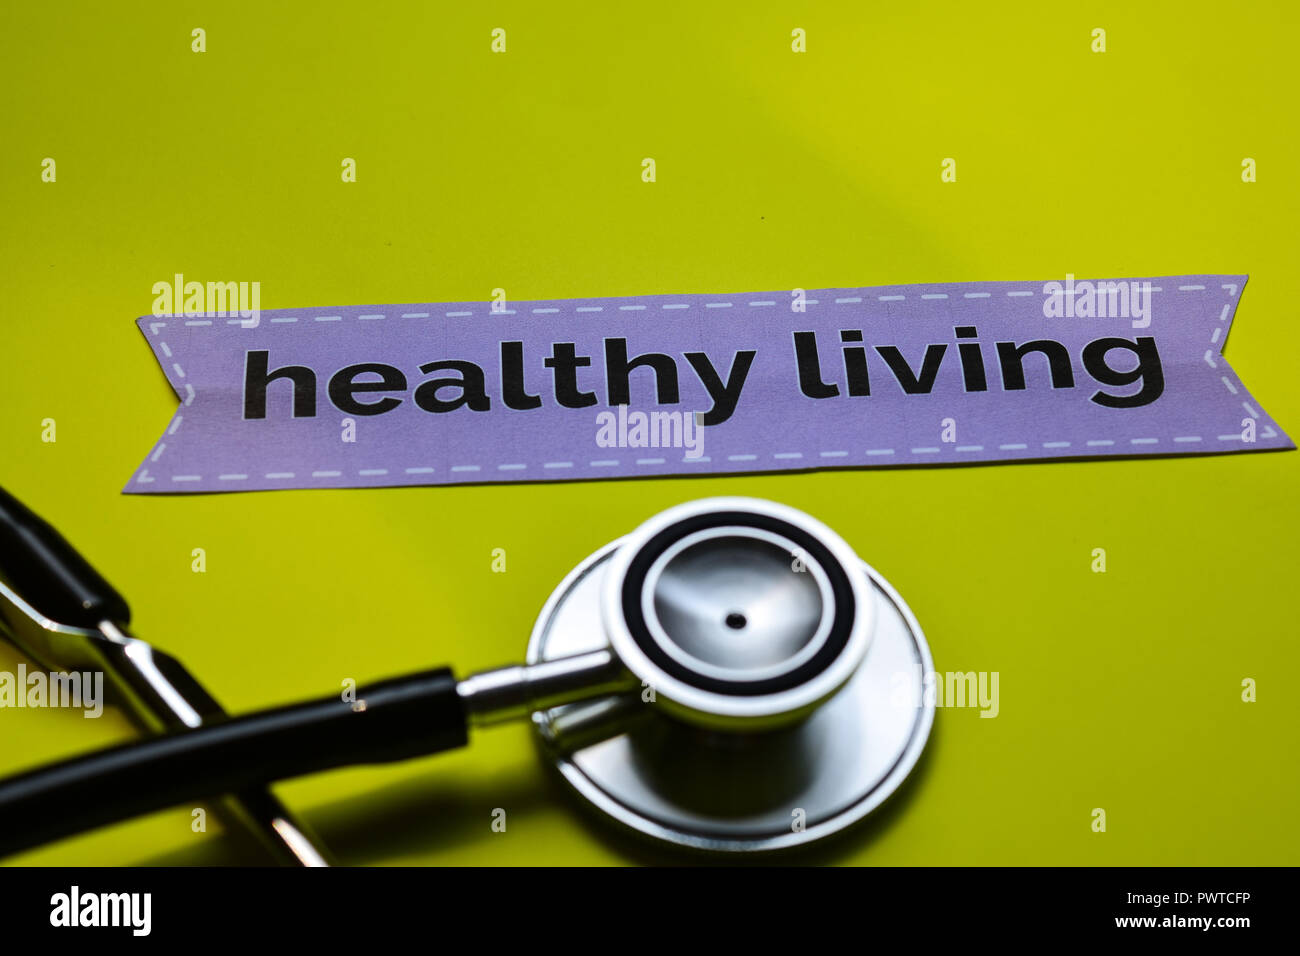 healthy living with stethoscope concept inspiration on yellow background - Stock Image